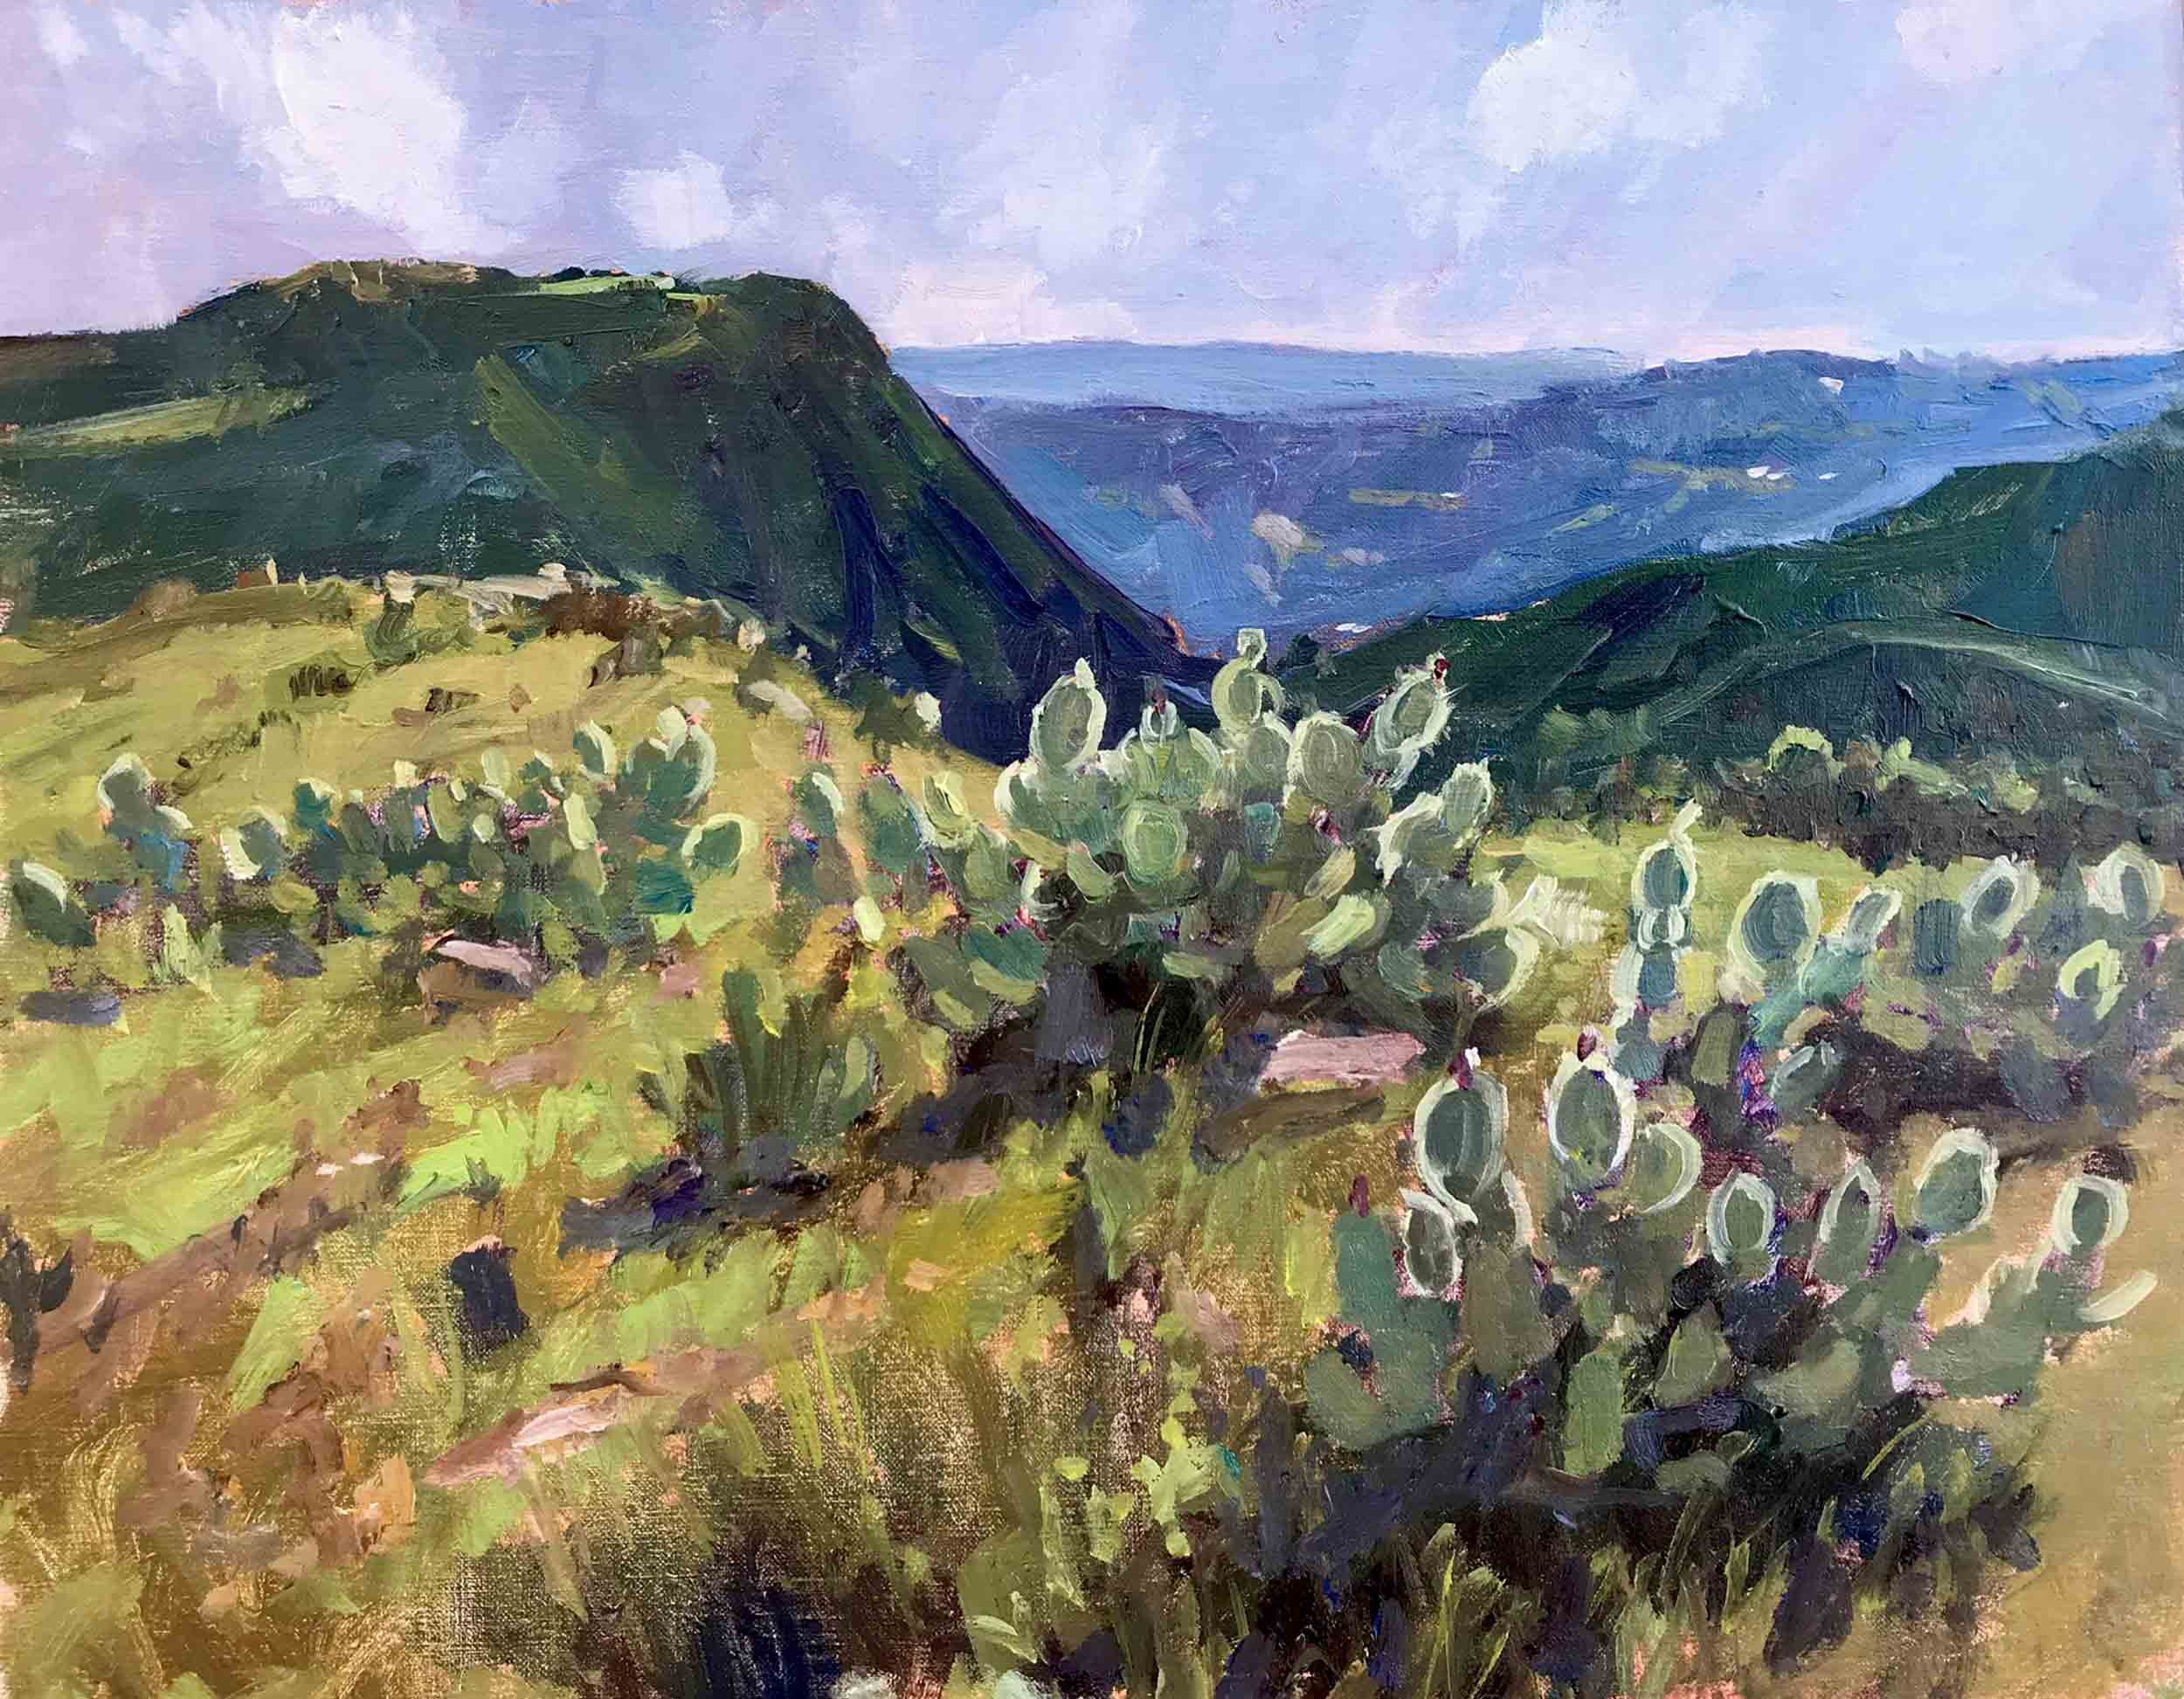 We enjoyed hiking the 8,300 acres of Santa Rosa so much, we went back a second day to explore the trails leading to the top of Monument Hill, which had panoramic views of grasslands, rolling hills and distant snow-capped mountains as far as the eye could see .    Monument Hill, 11x14 en plein air oil painting by Brad Betts